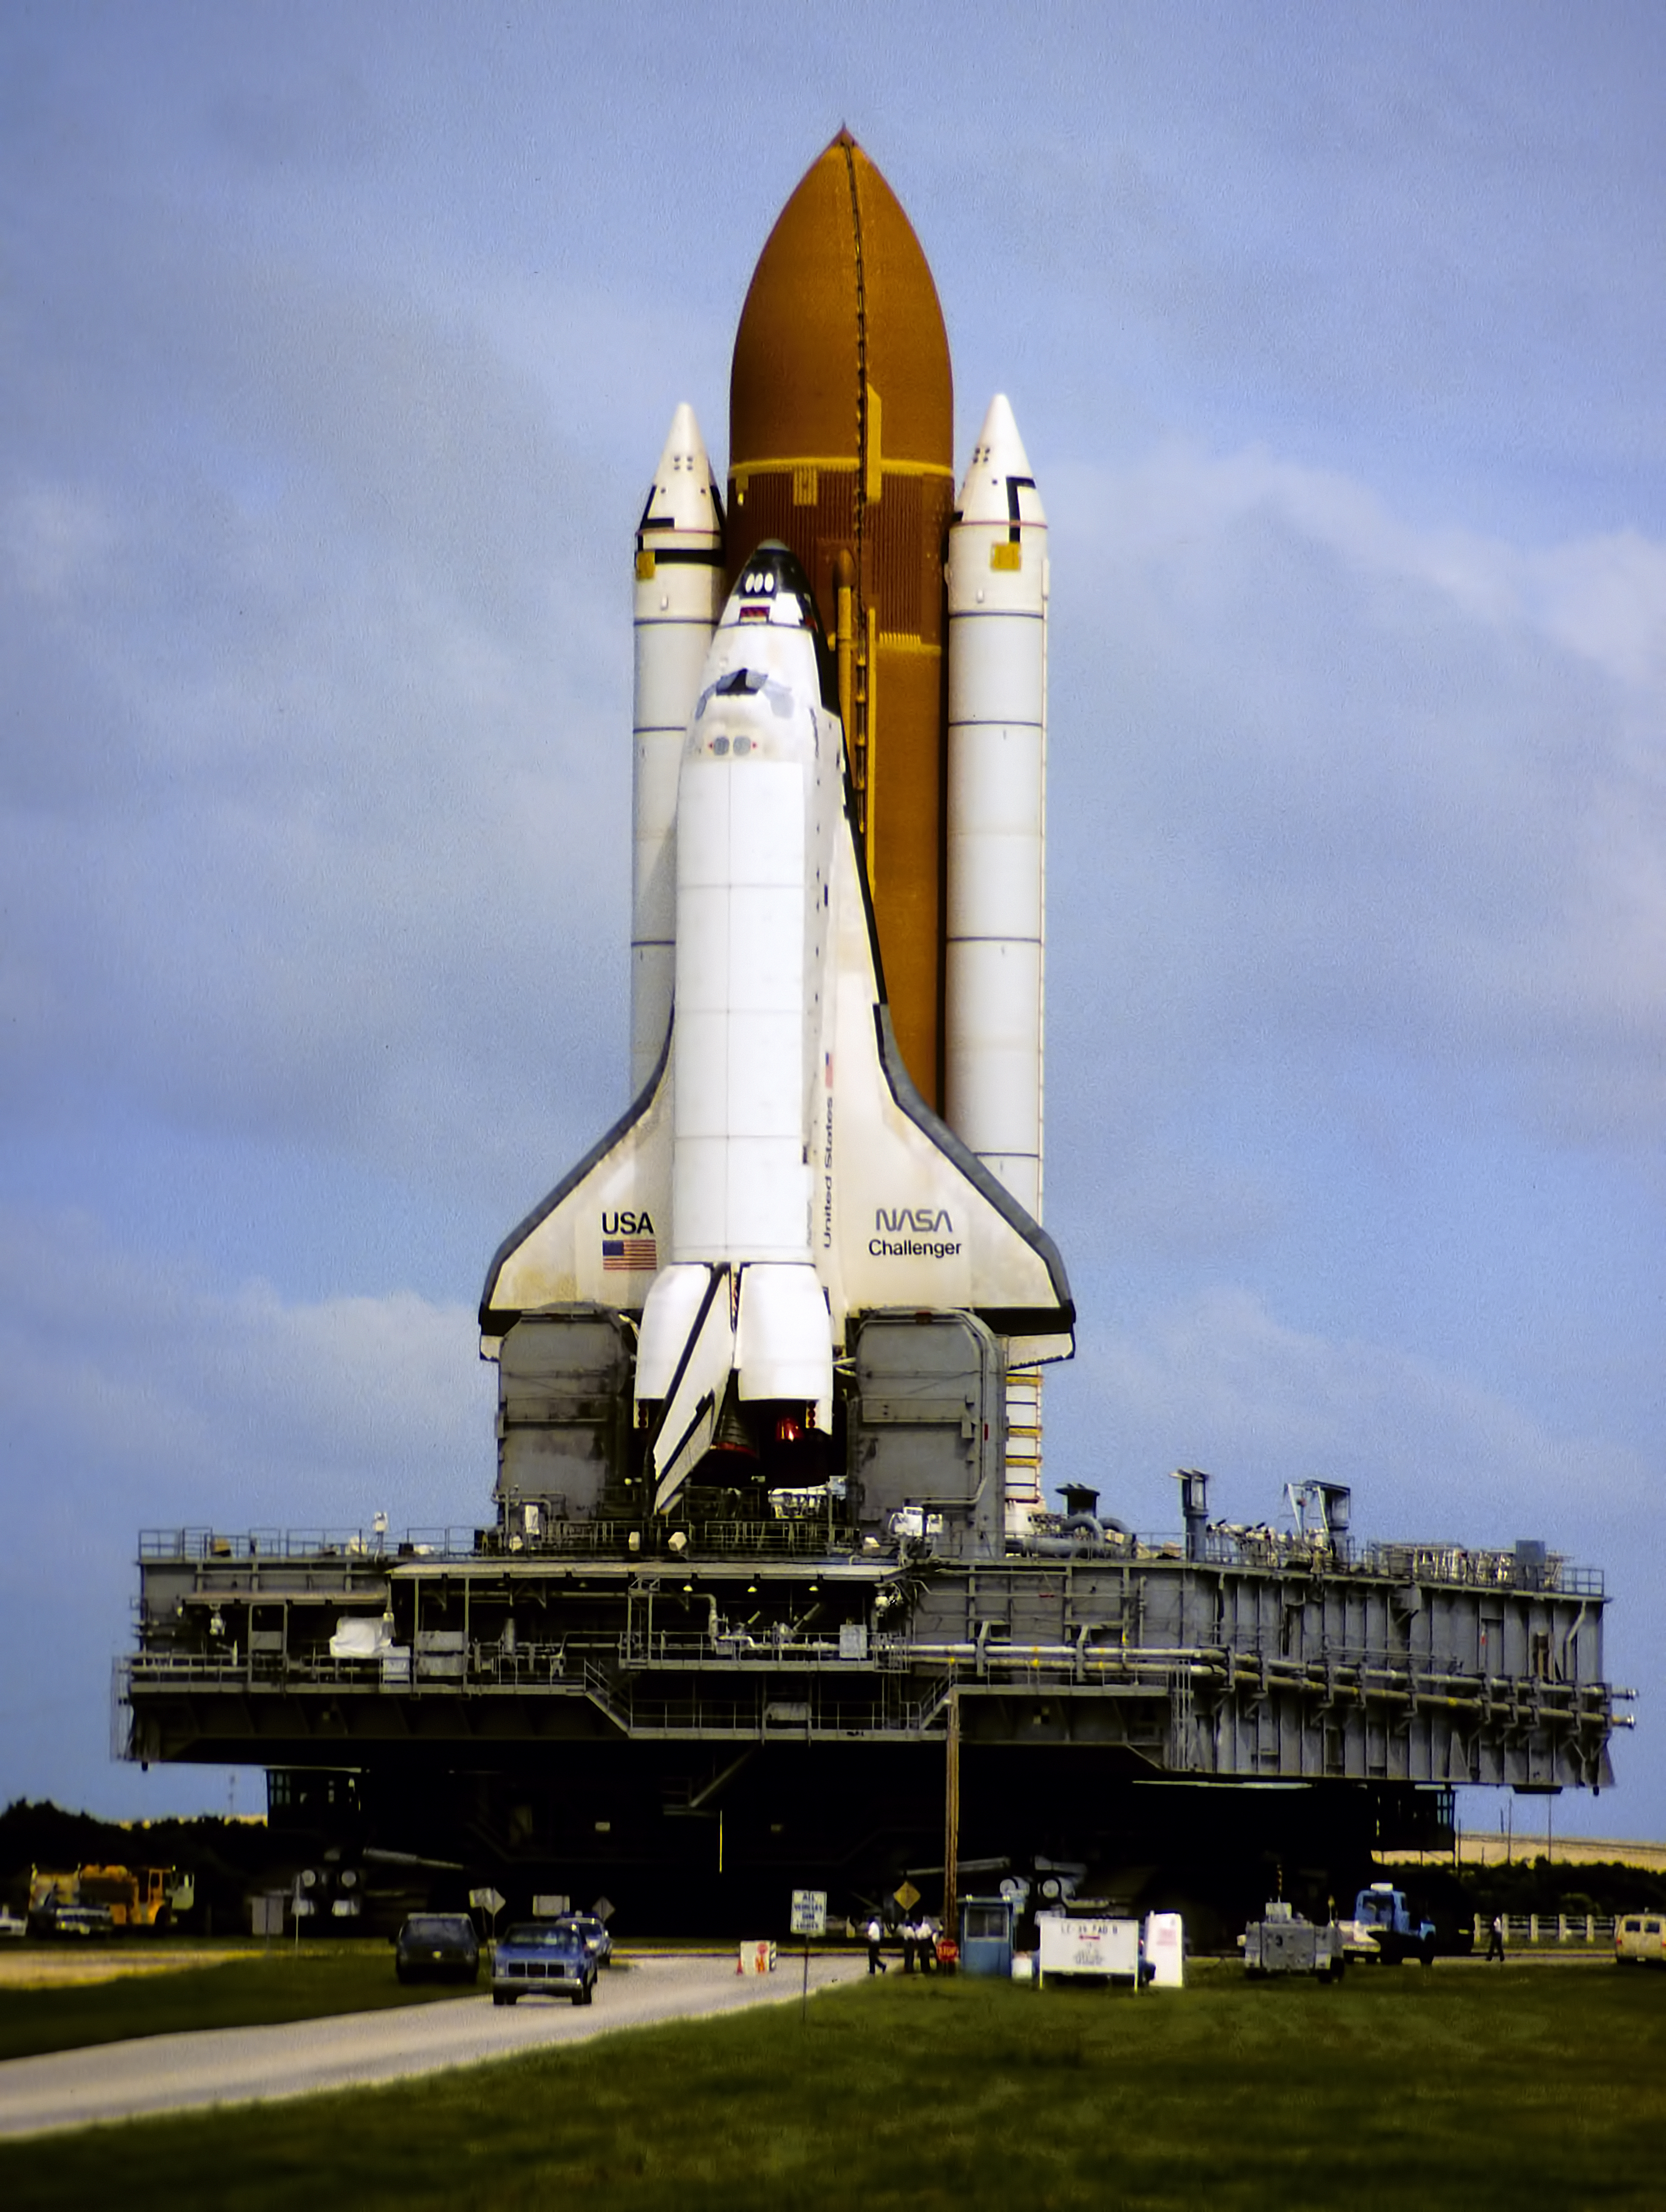 space shuttle challenger impact on america - photo #29